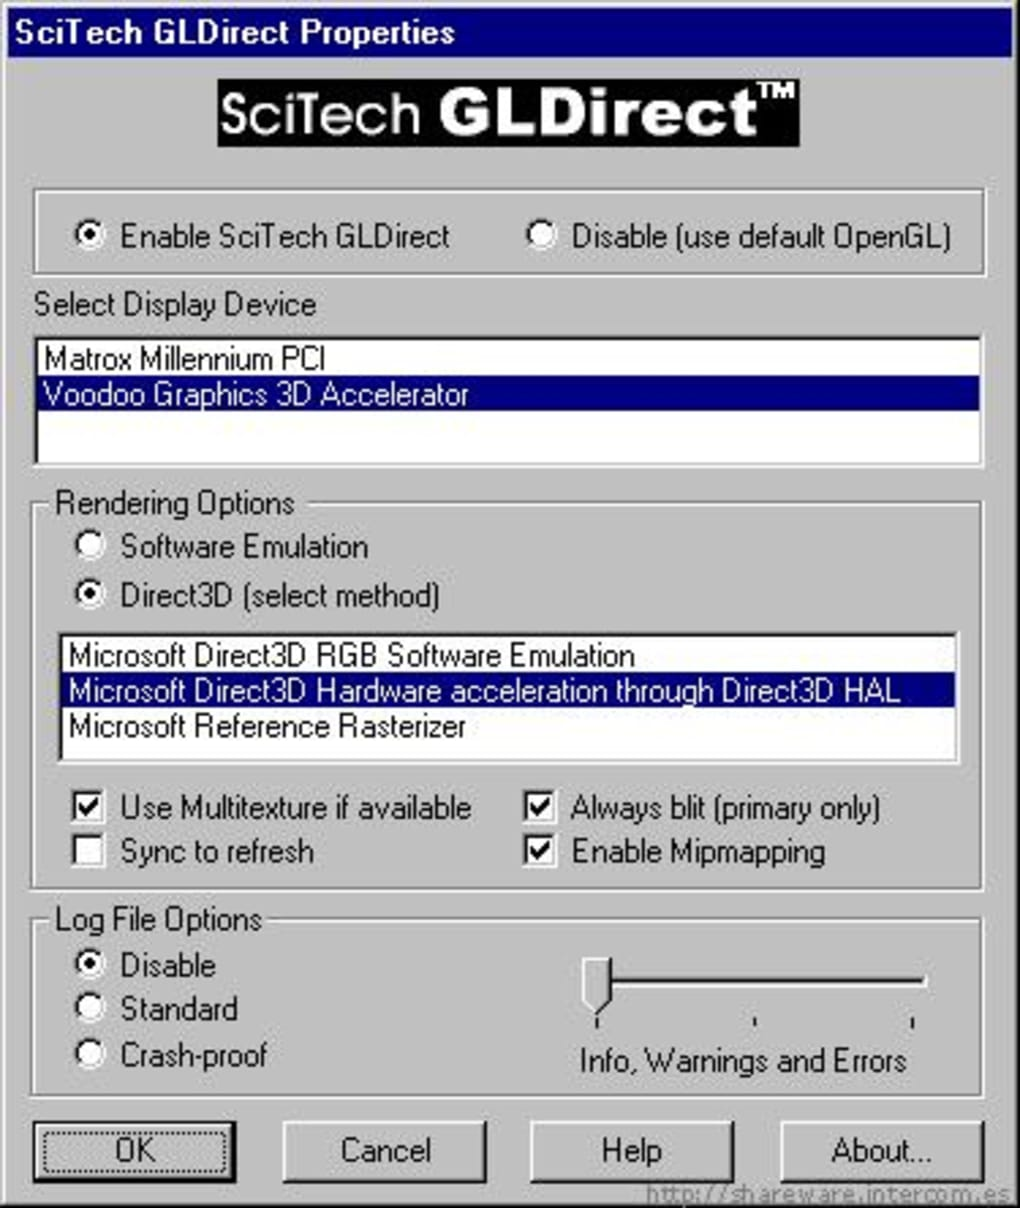 scitech gldirect 4.0.1